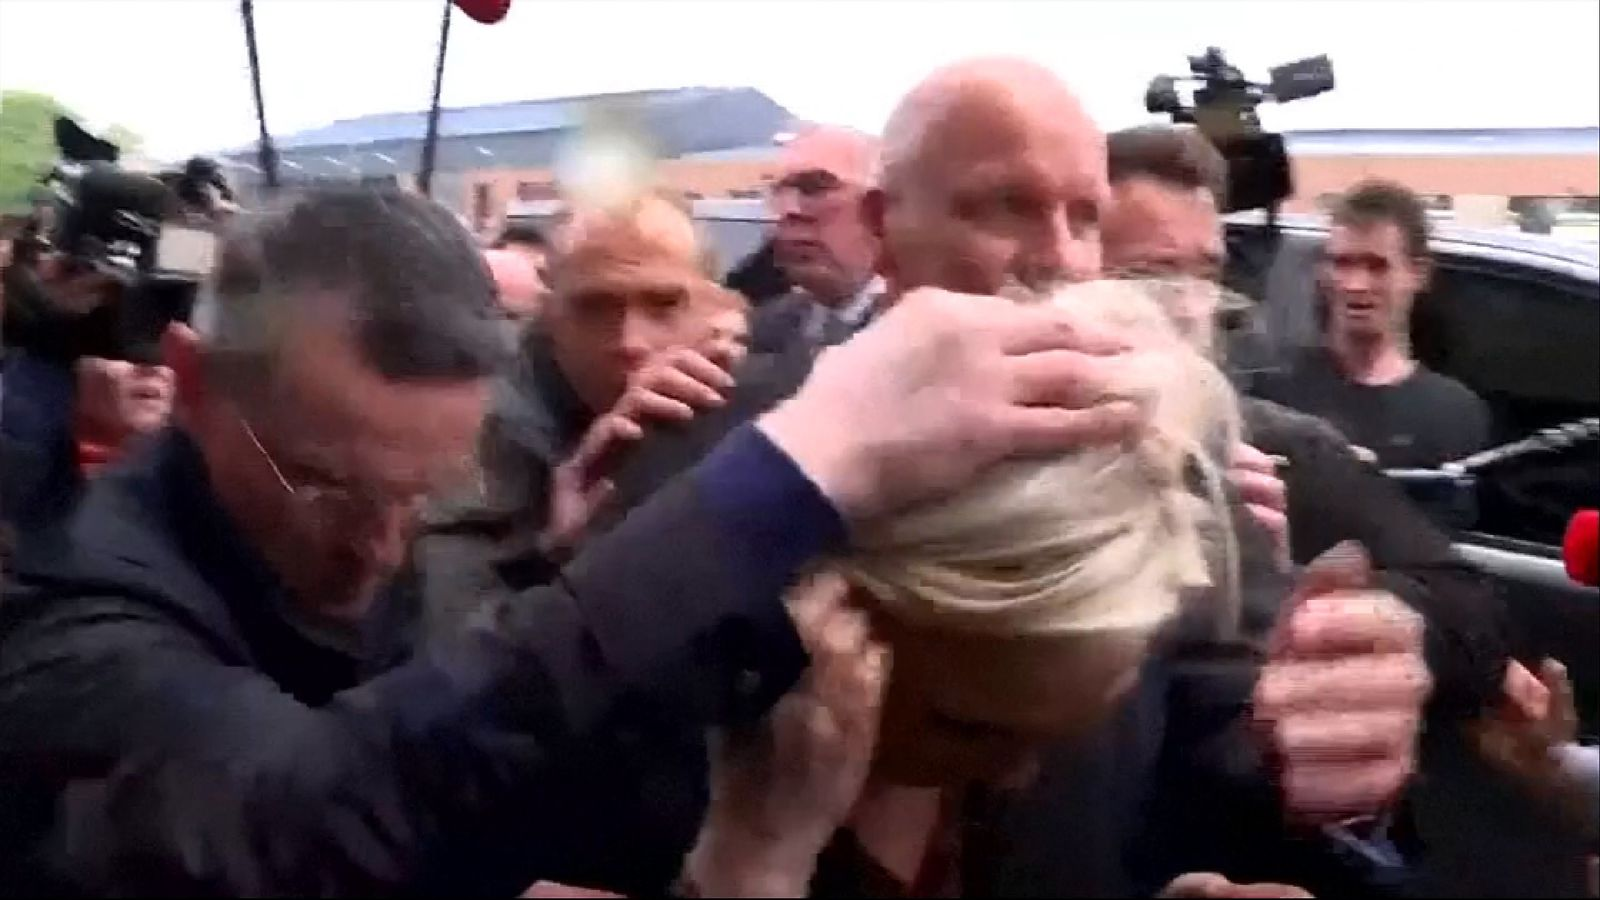 Security usher Marine Le Pen away after a protester throws an egg.